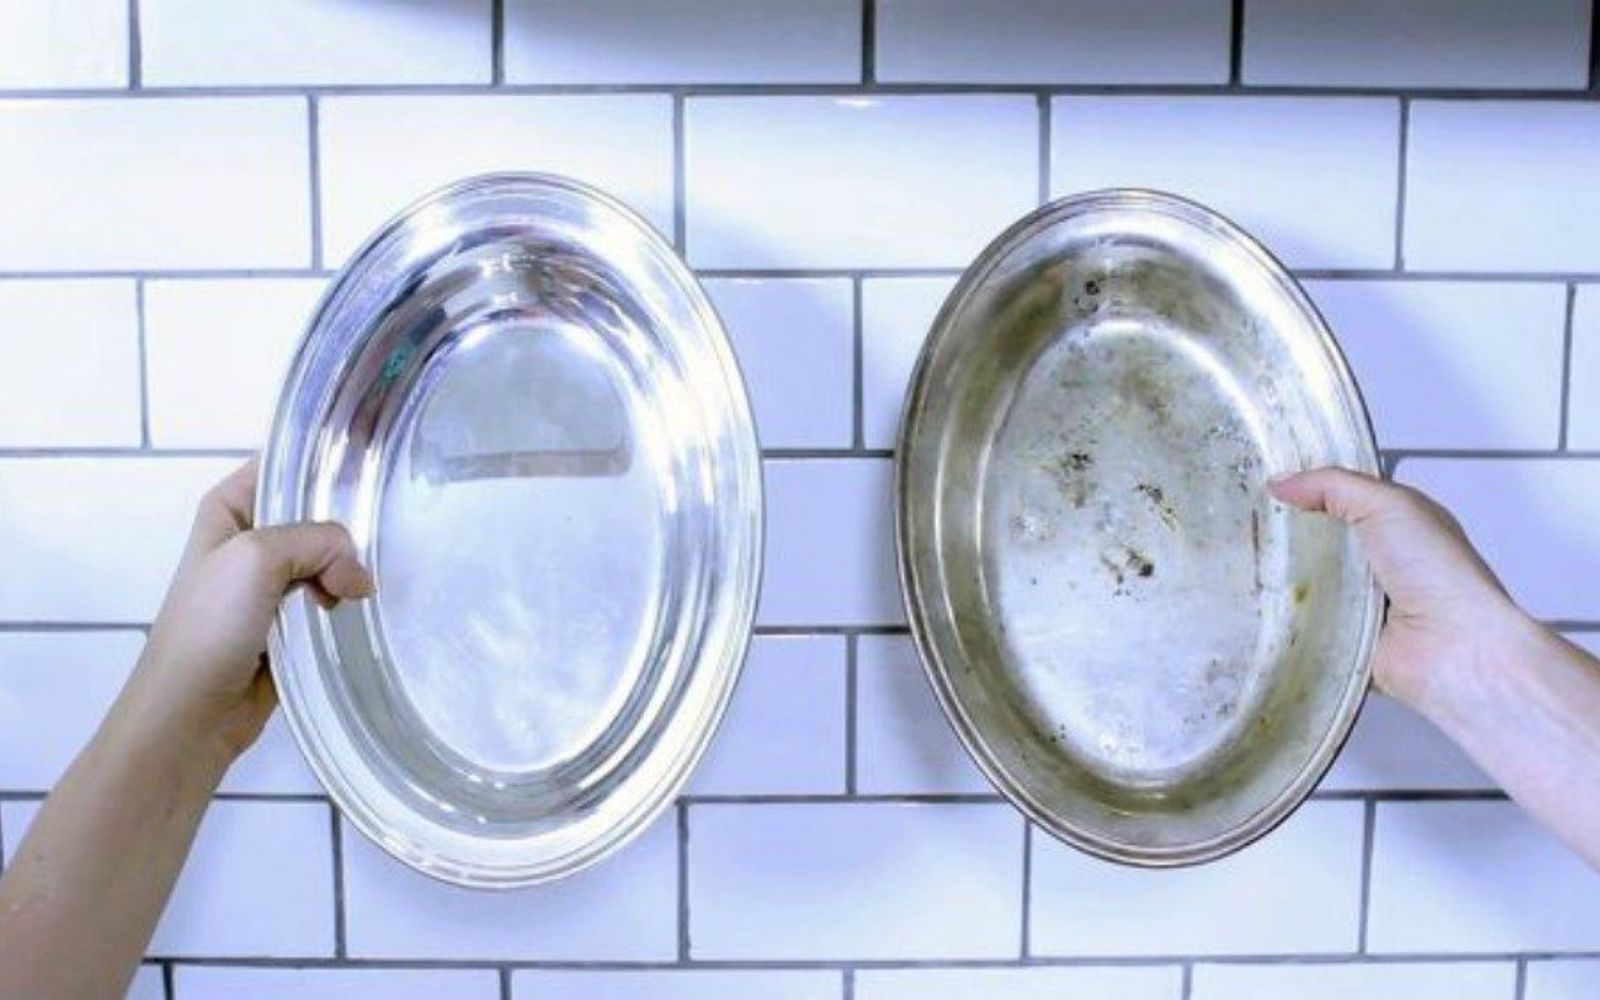 s your quick cleaning plan to get a sparkling home by the weekend, cleaning tips, Quickly clean your silver without polishing